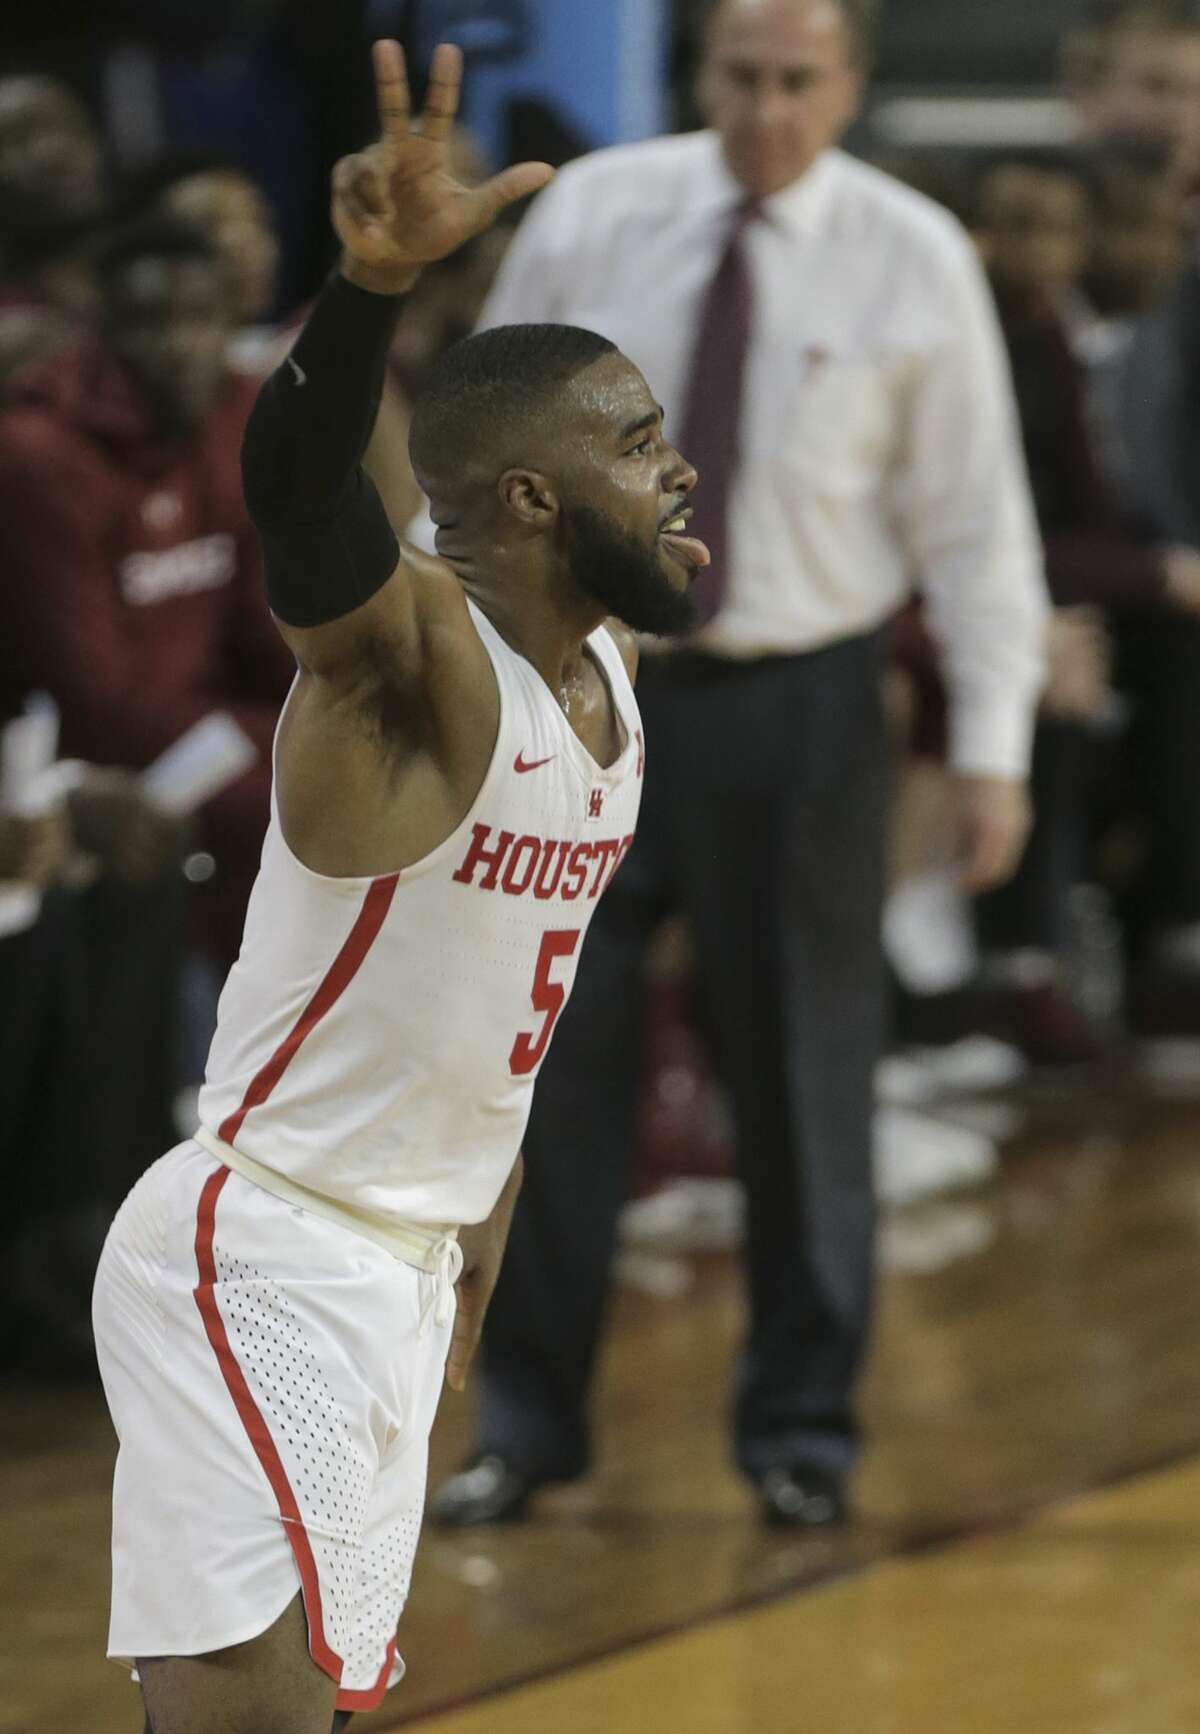 Houston Cougars guard Corey Davis Jr. (5) reacts after sinking a three-point shot in the second half against Temple Owls at TSU's H&PE Arena on Saturday, Dec. 30, 2017, in Houston. Davis had 12 points in the team's 76-73 win. ( Elizabeth Conley / Houston Chronicle )